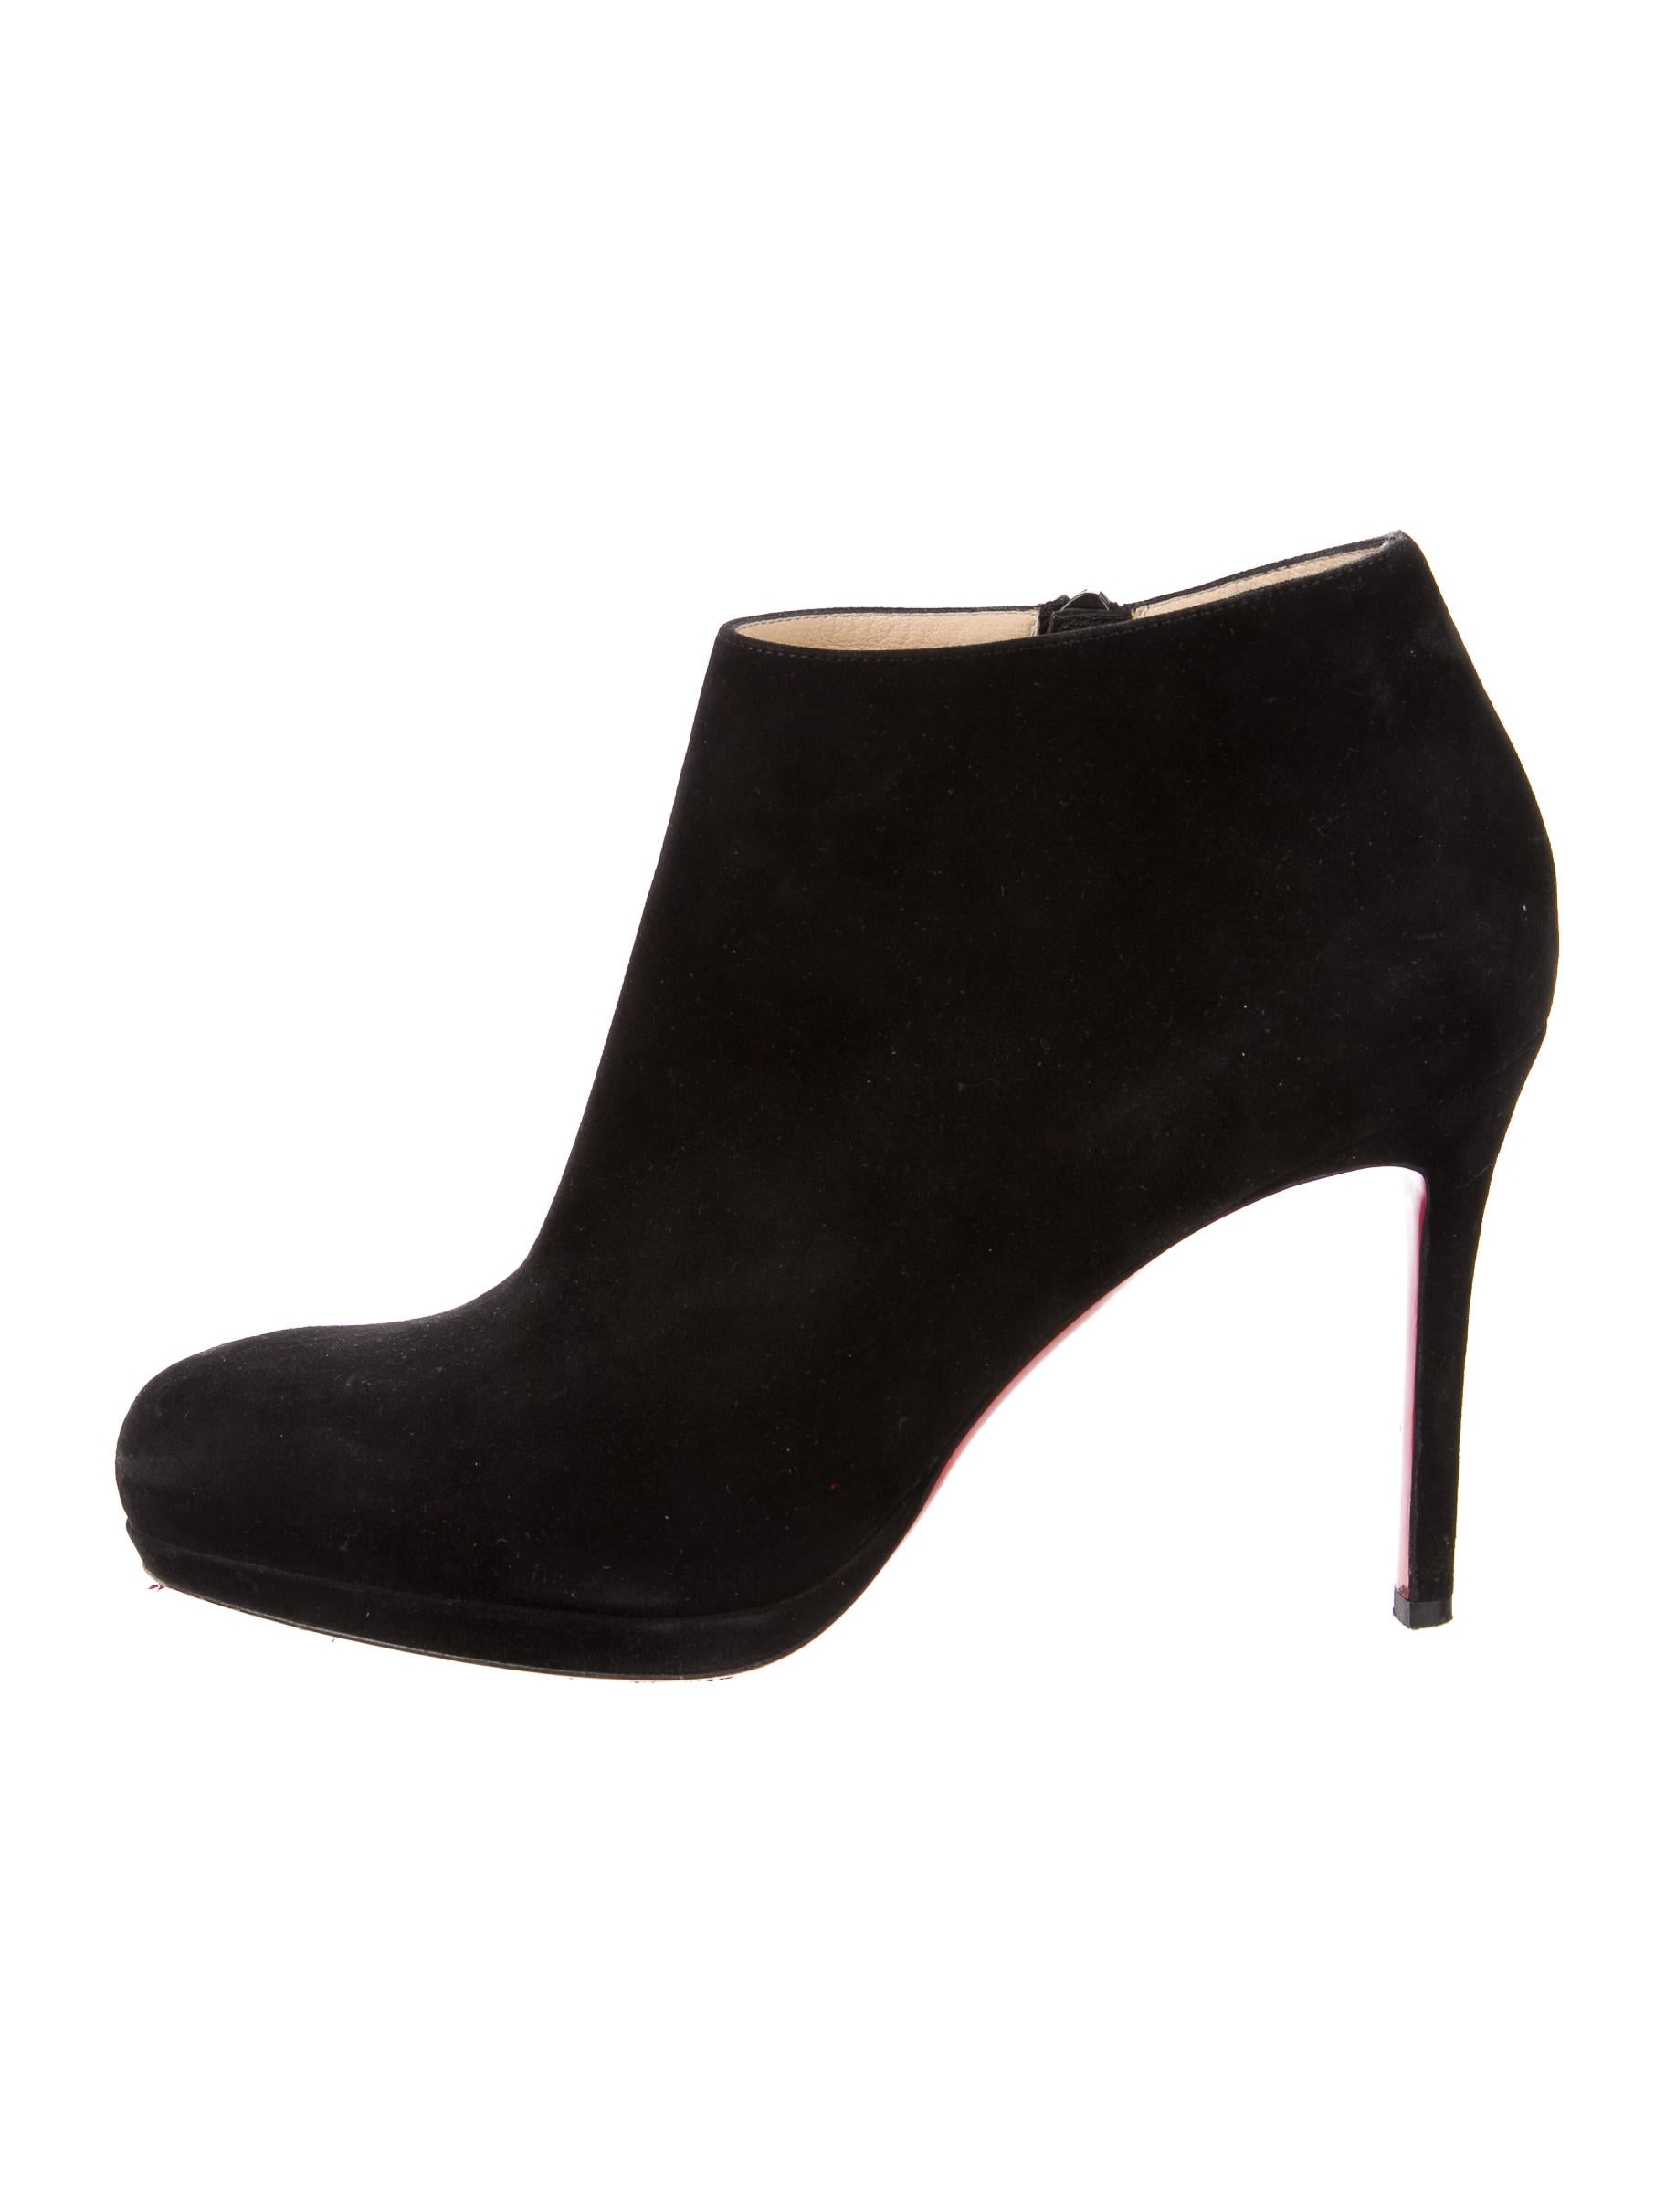 Christian Louboutin Bella Top 100 Booties - Shoes - CHT63224  f4614c78d